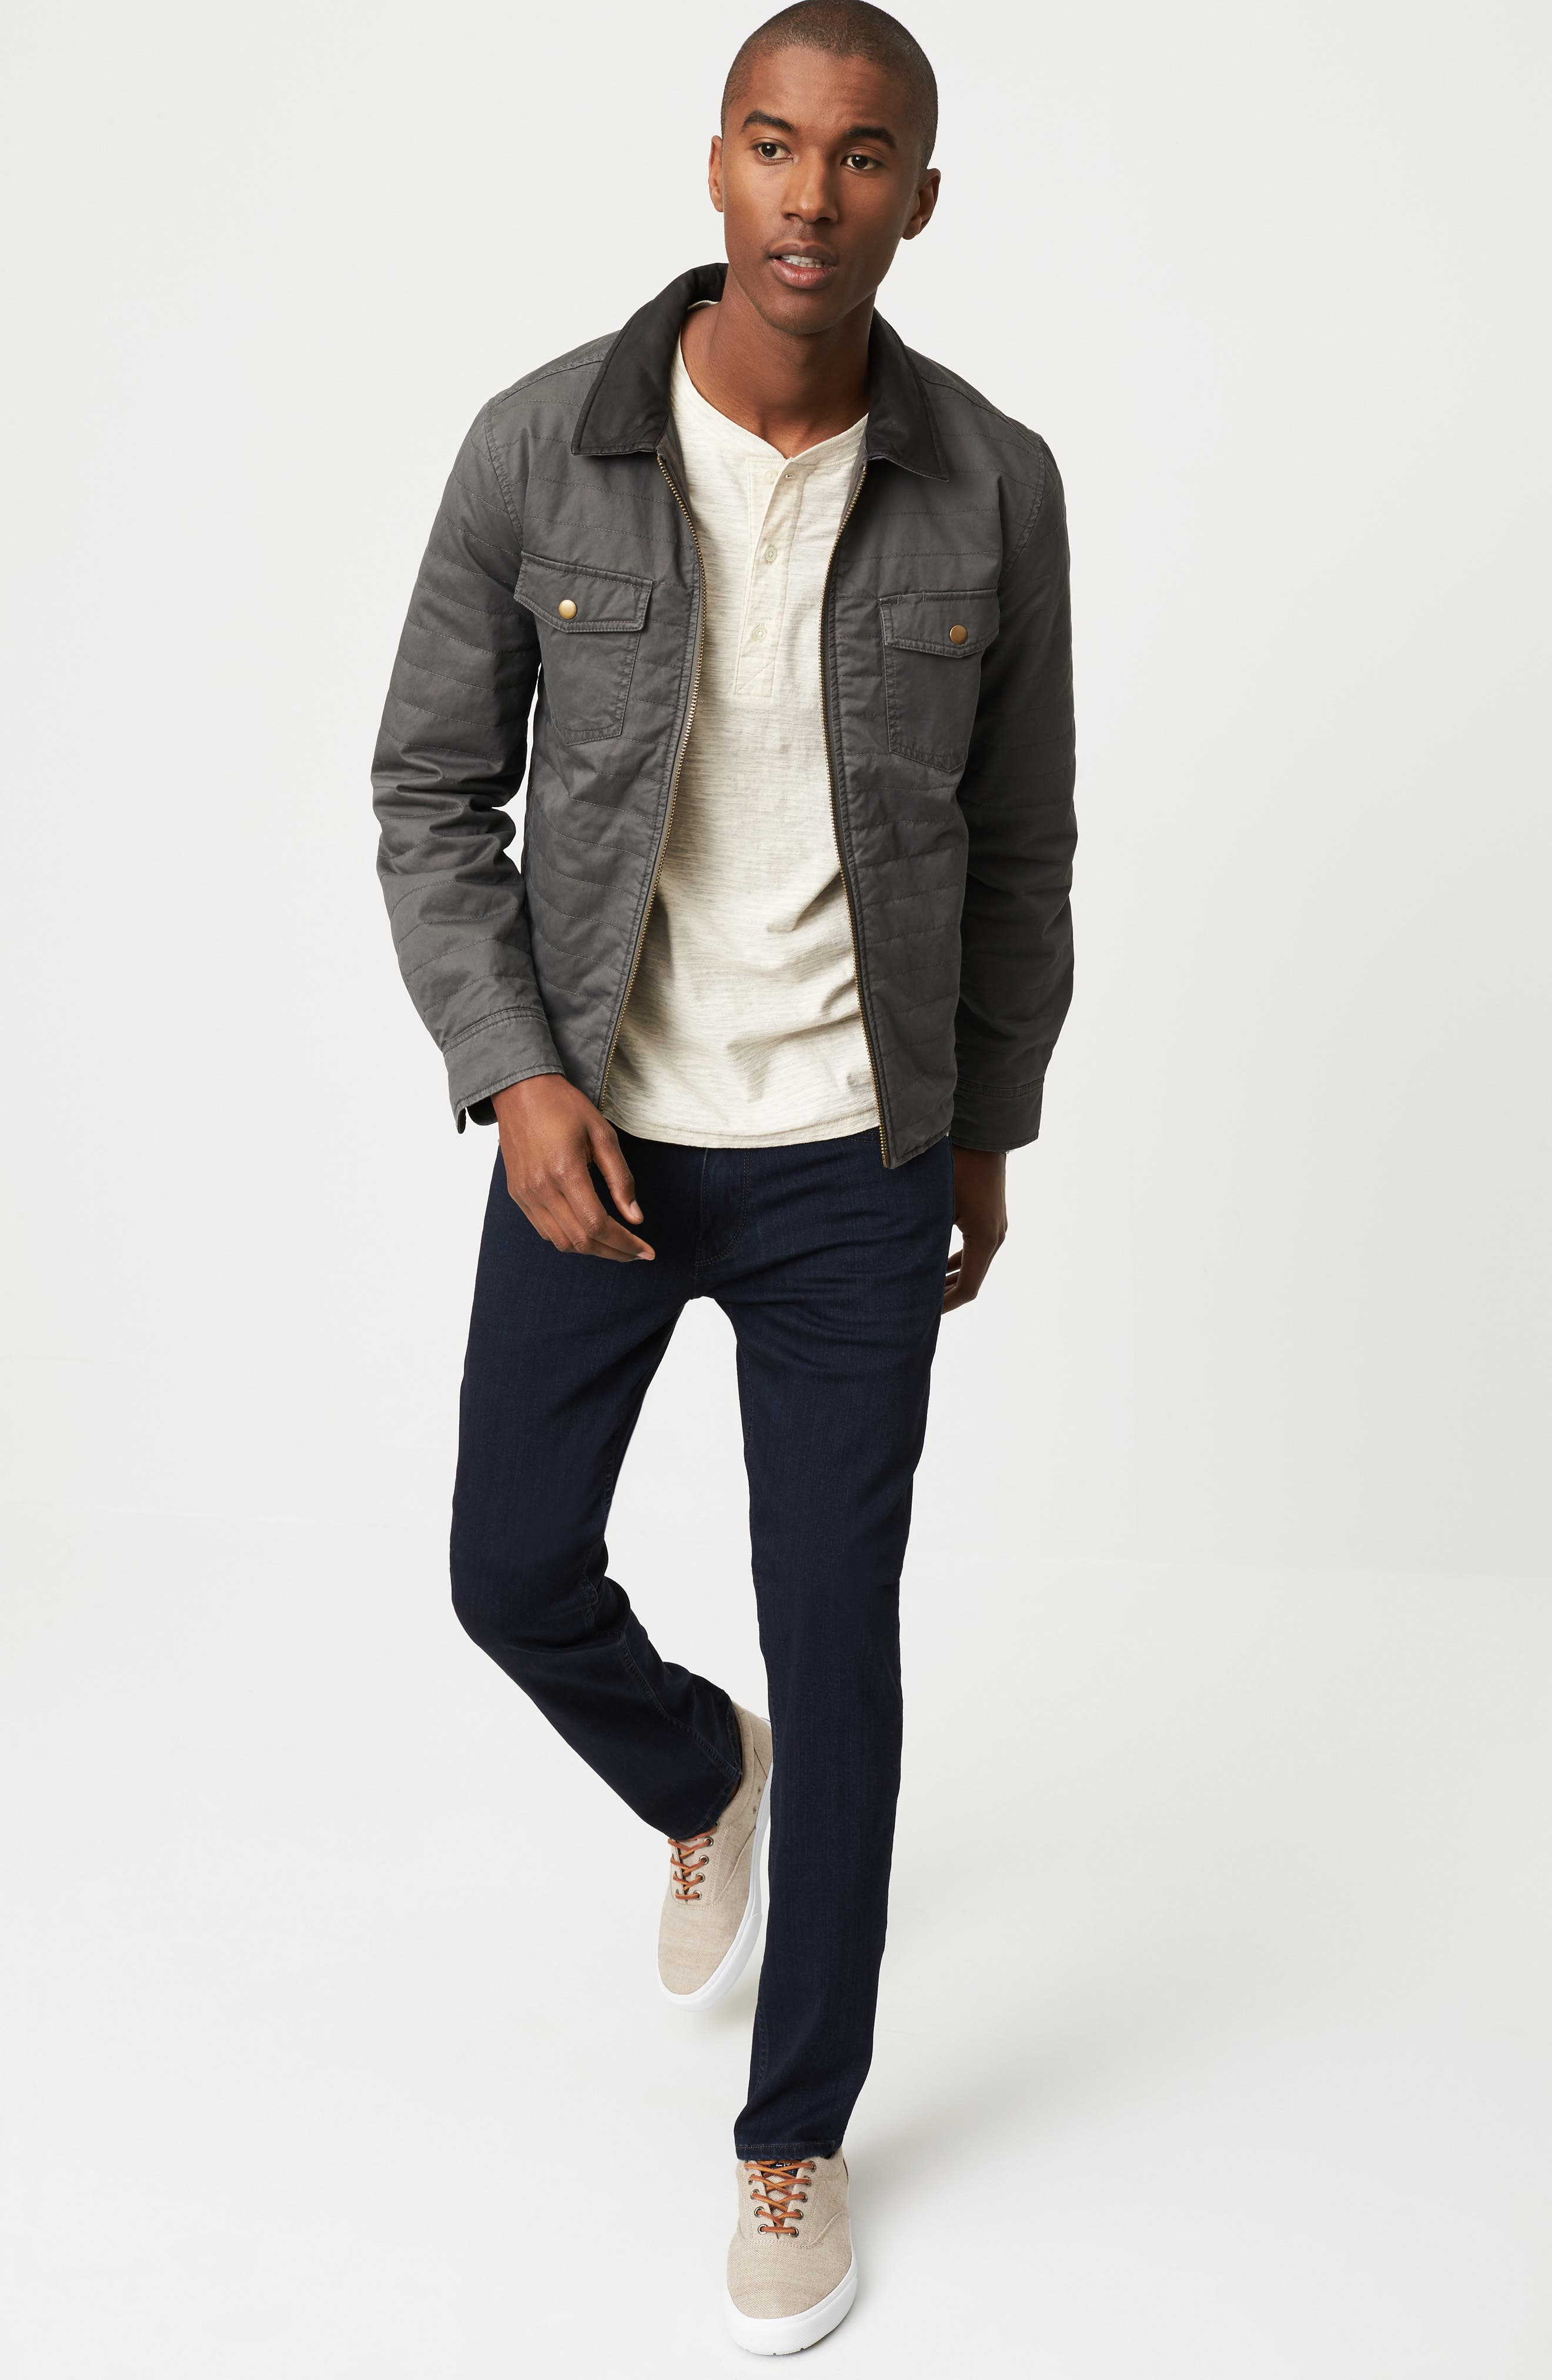 Billy Reid Shirt Jacket, Henley & PAIGE Jeans Outfit with Accessories